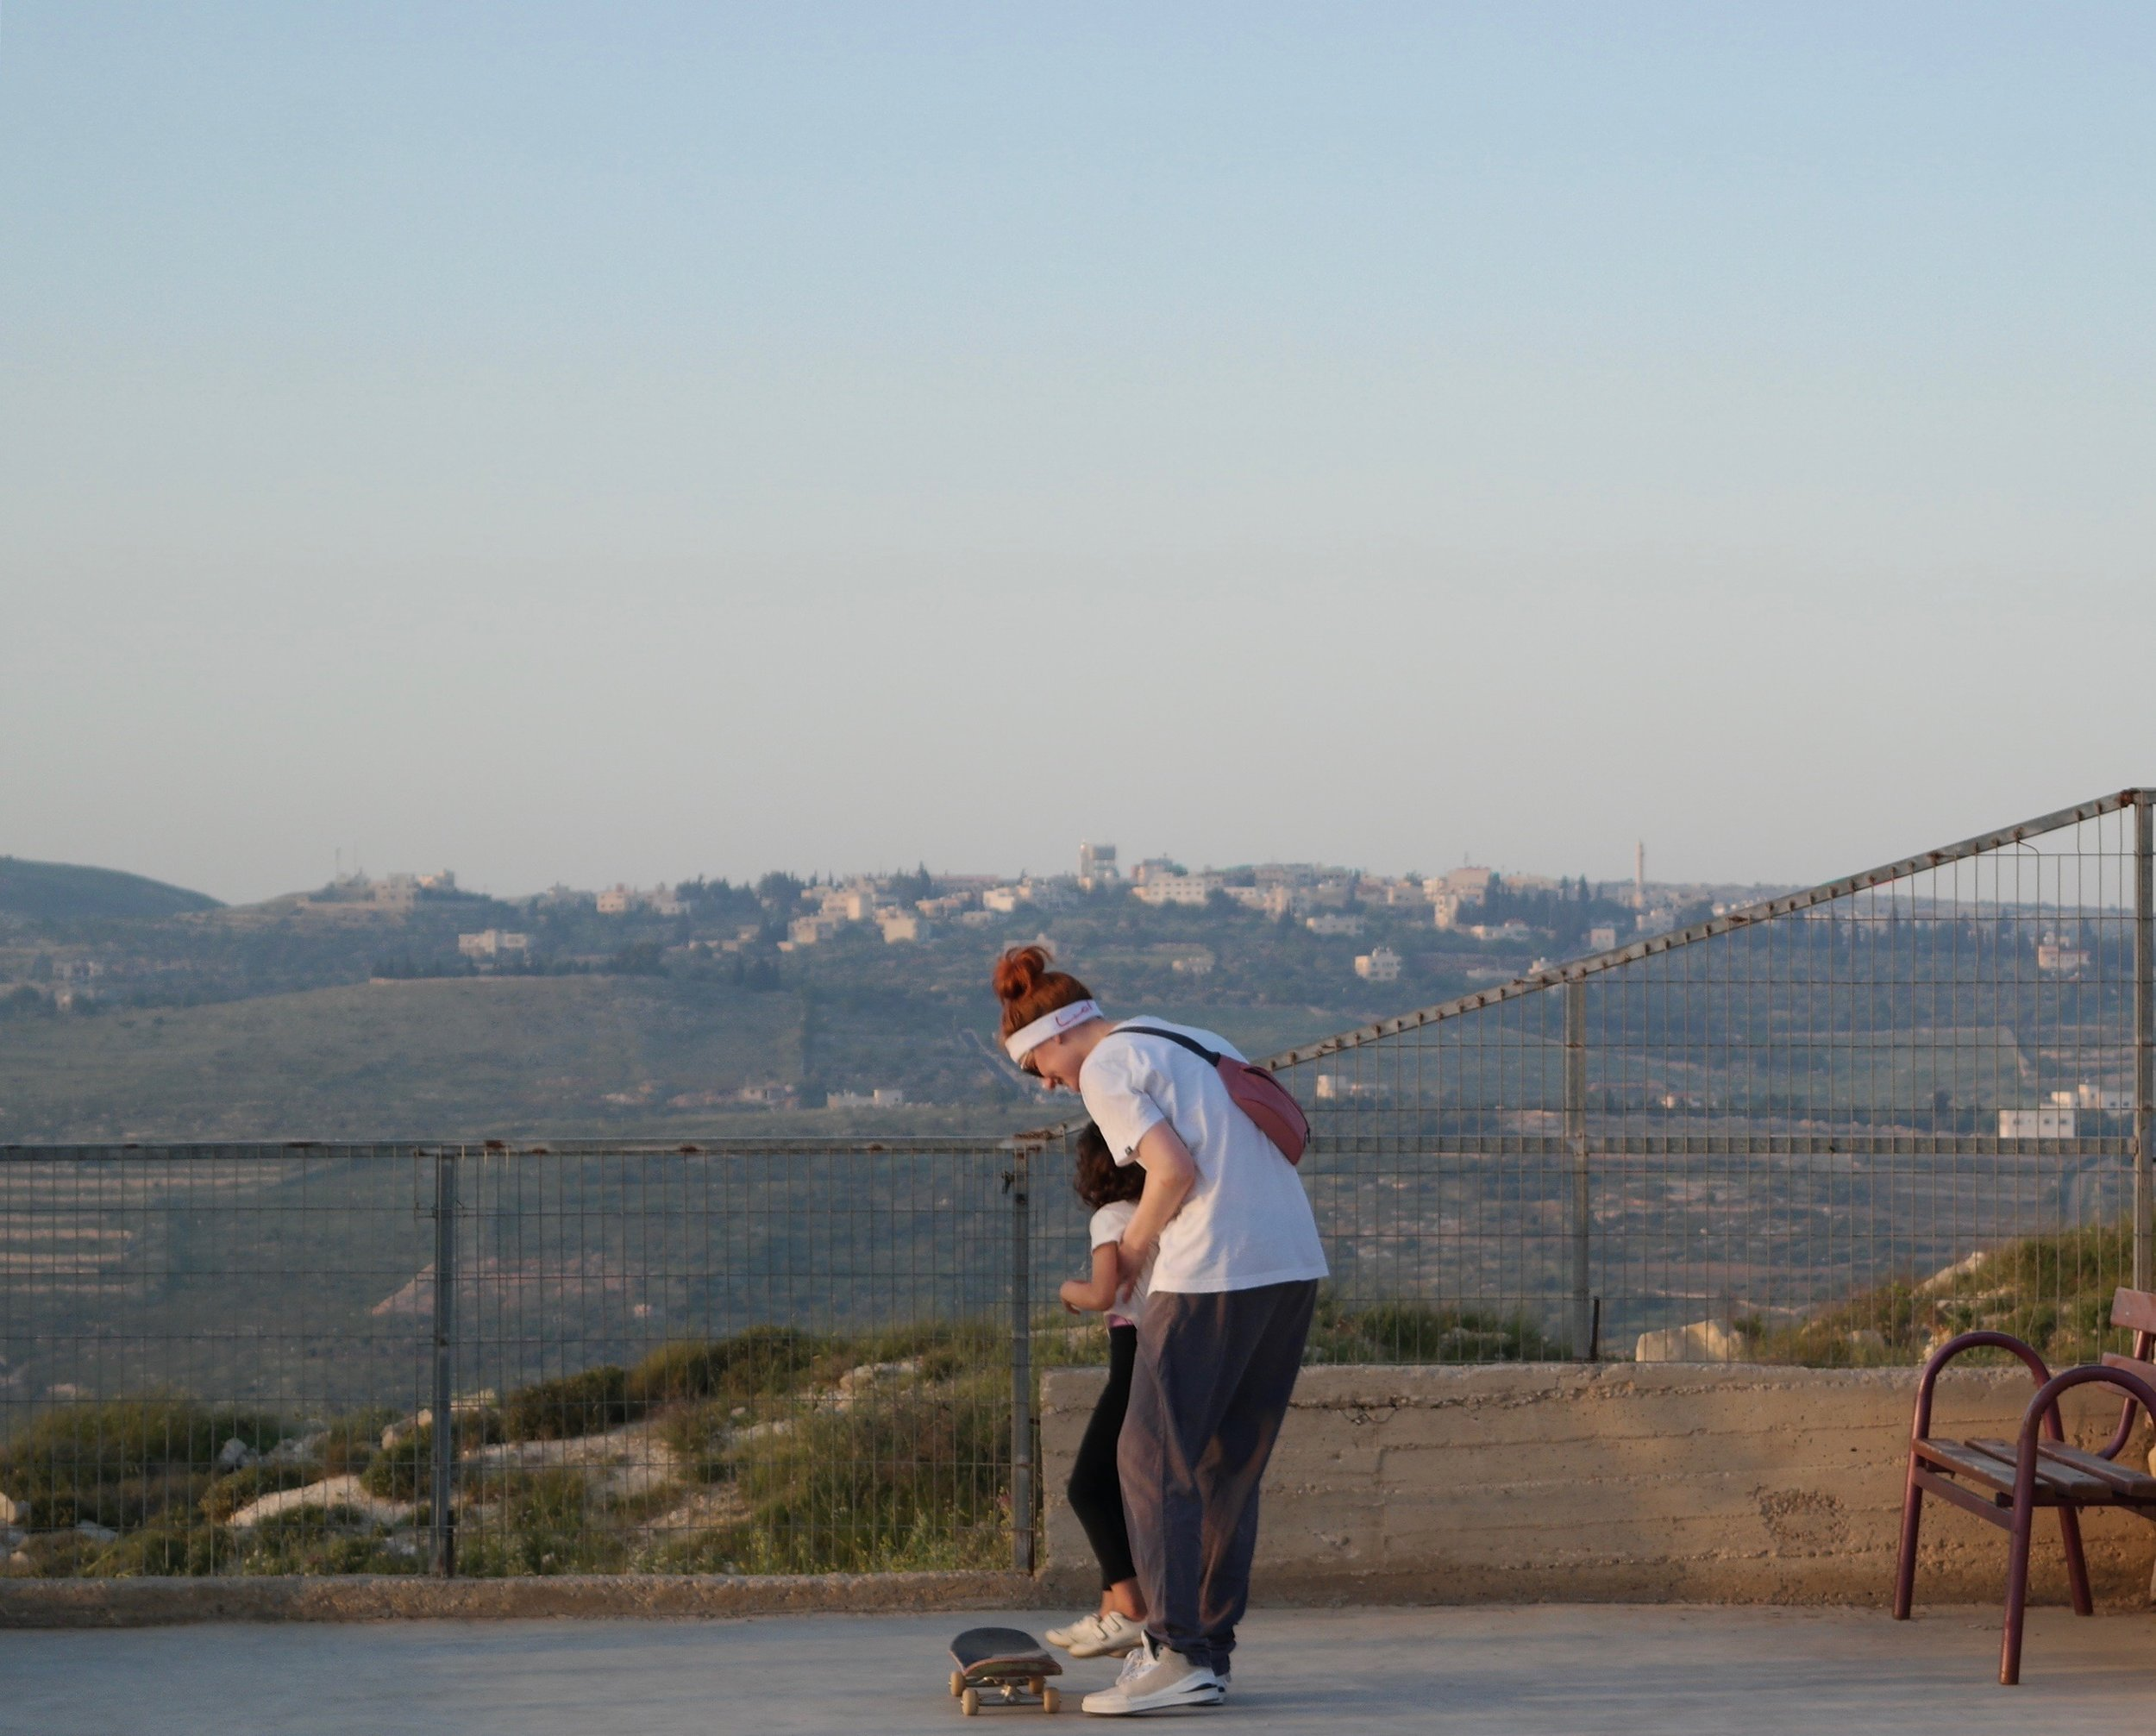 What we do - We offer a combination of skateboarding and educational classes for girls and womxn in Athens and Amsterdam. Globally, we provide women volunteers with advice and (online) mentoring sessions.Learn More